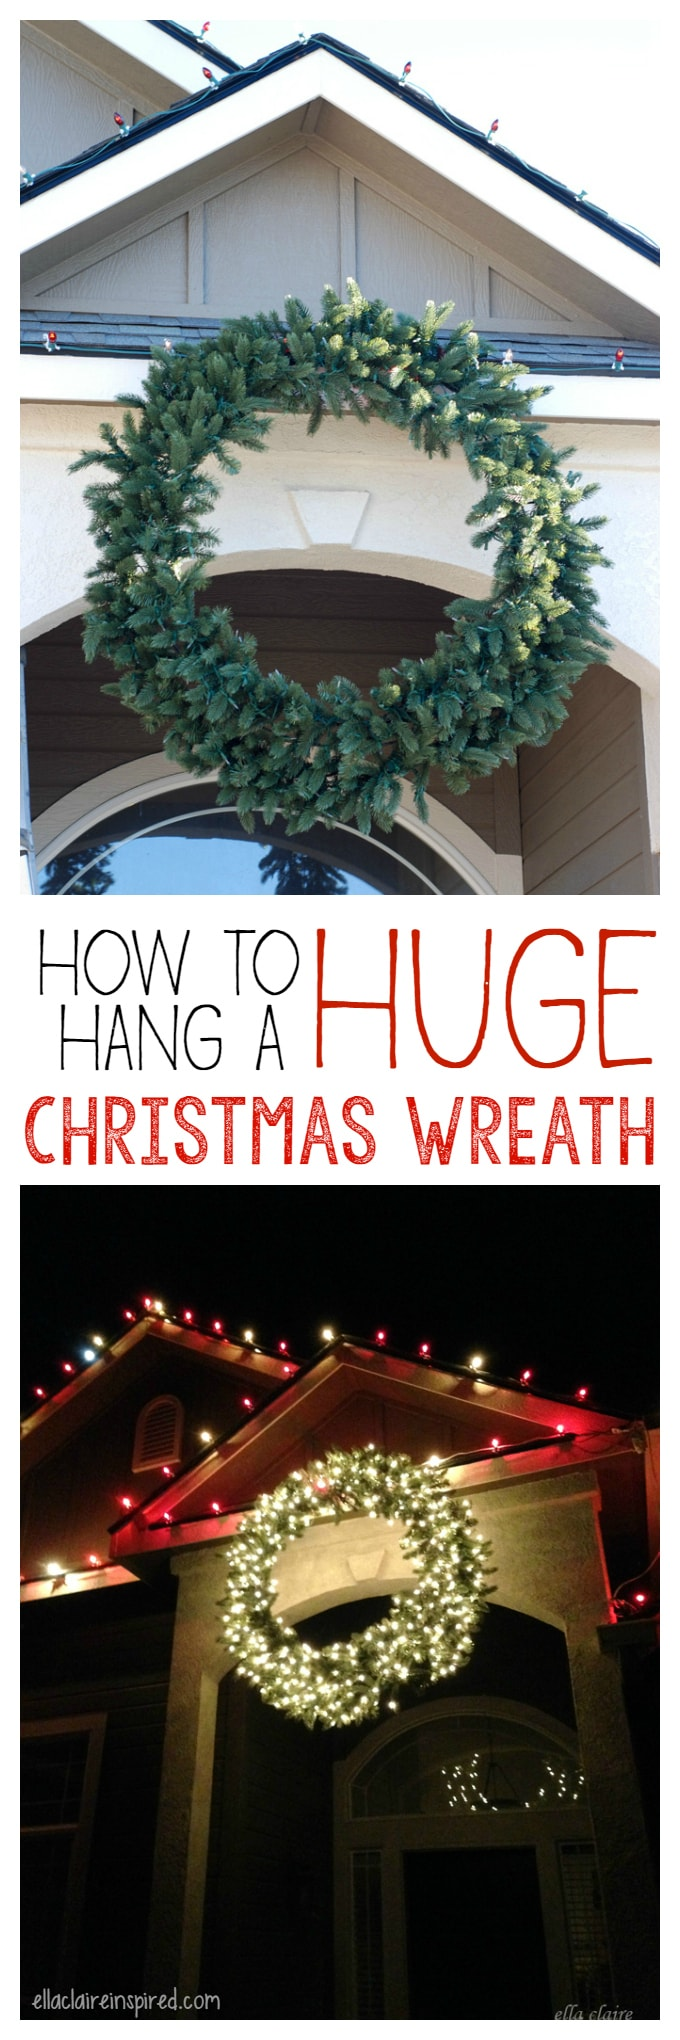 How to Hang a Huge Outdoor Christmas Wreath